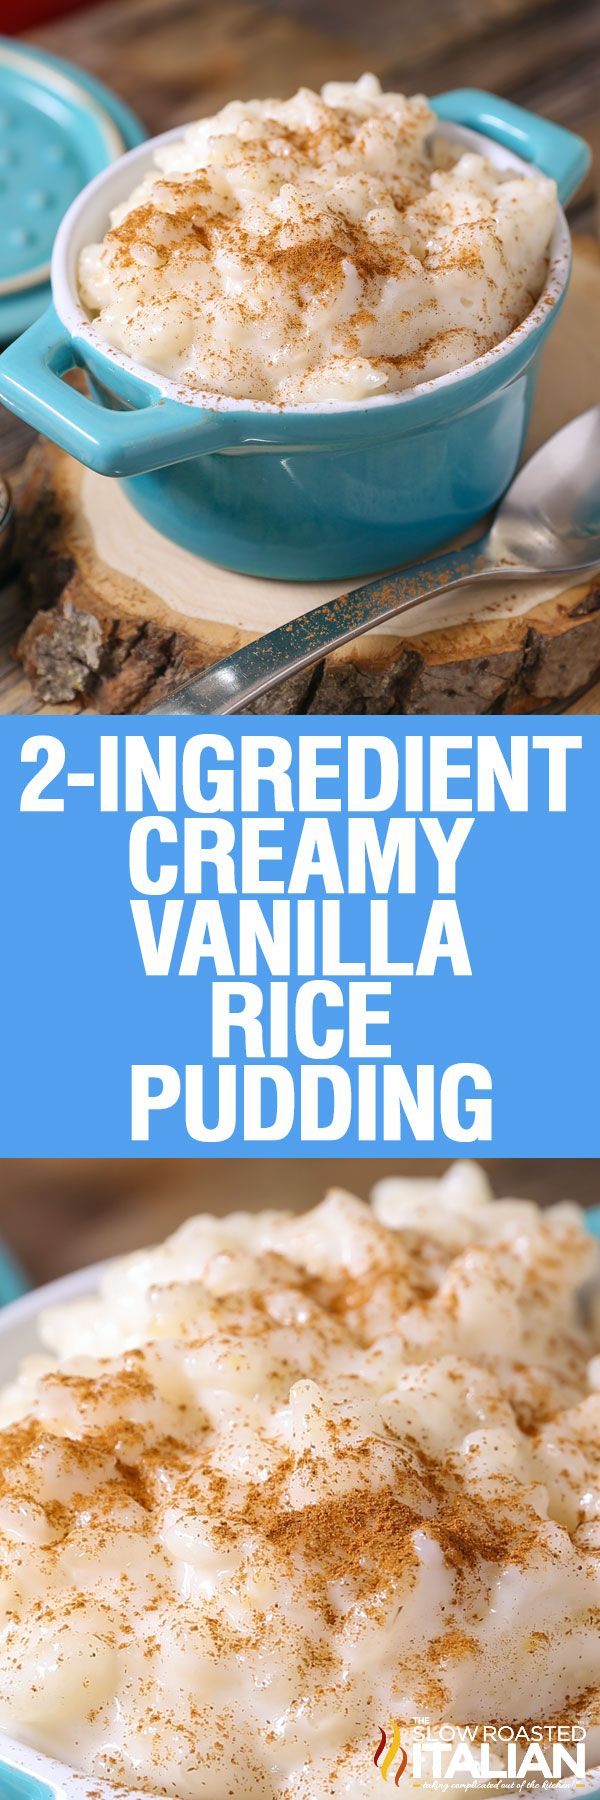 Creamy Vanilla Rice Pudding is the epitome of comfort food. This simple dessert made with just 2 ingredients is rich, silky and utterly delicious! This recipe is so simple it just about cooks itself!